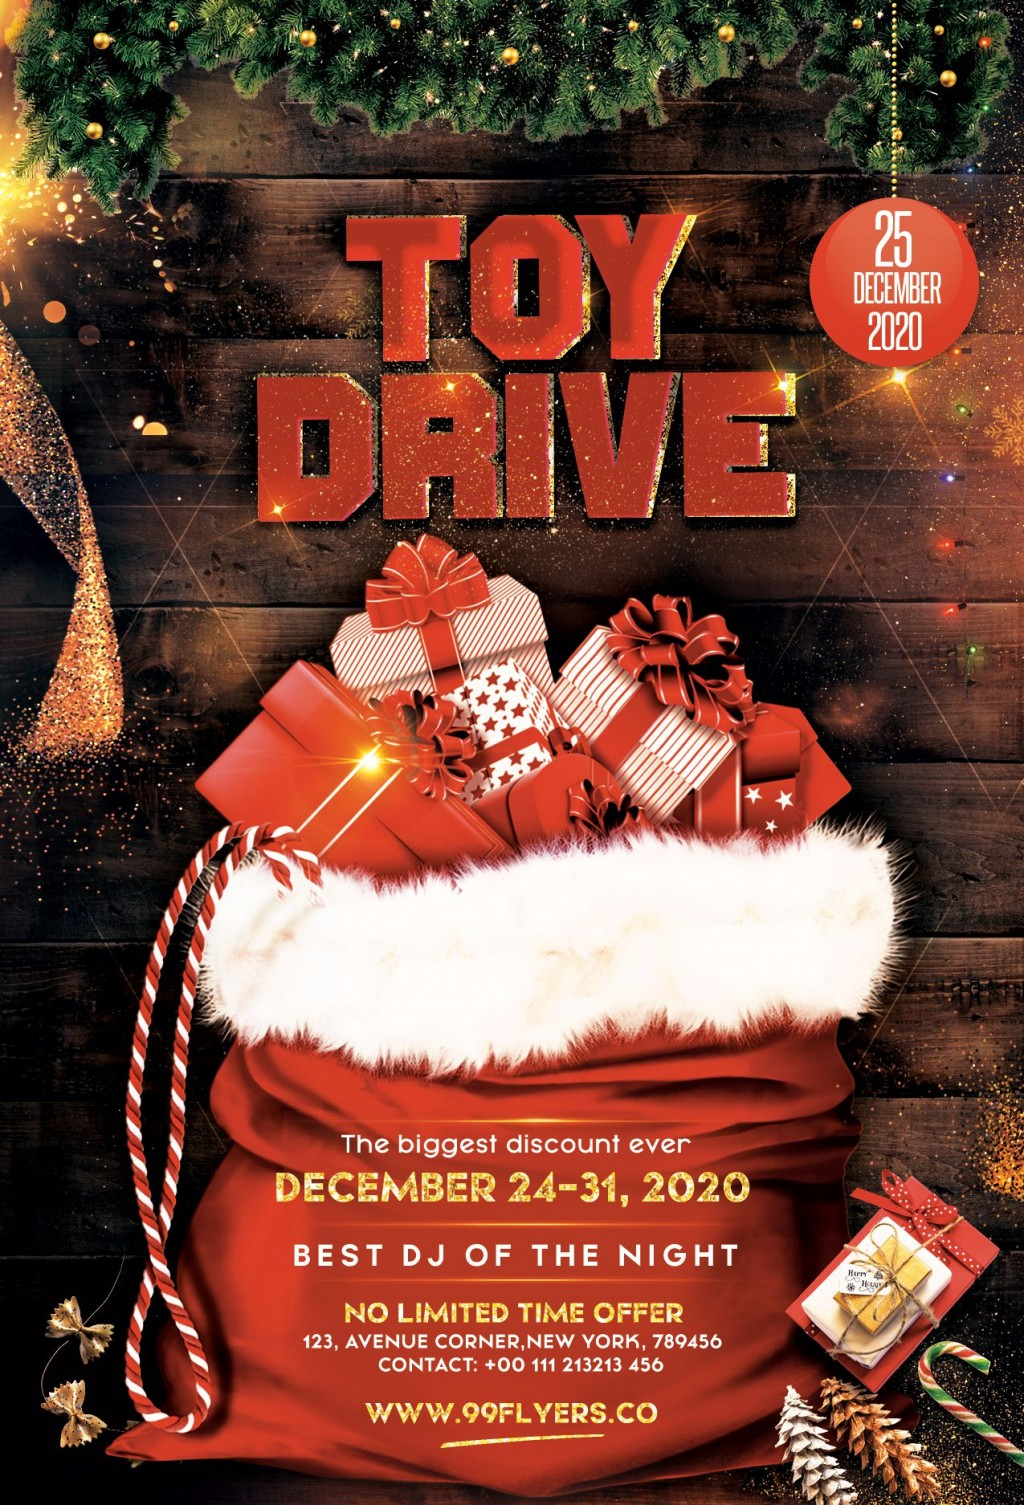 006 Breathtaking Toy Drive Flyer Template Picture  Holiday Download Free WordLarge